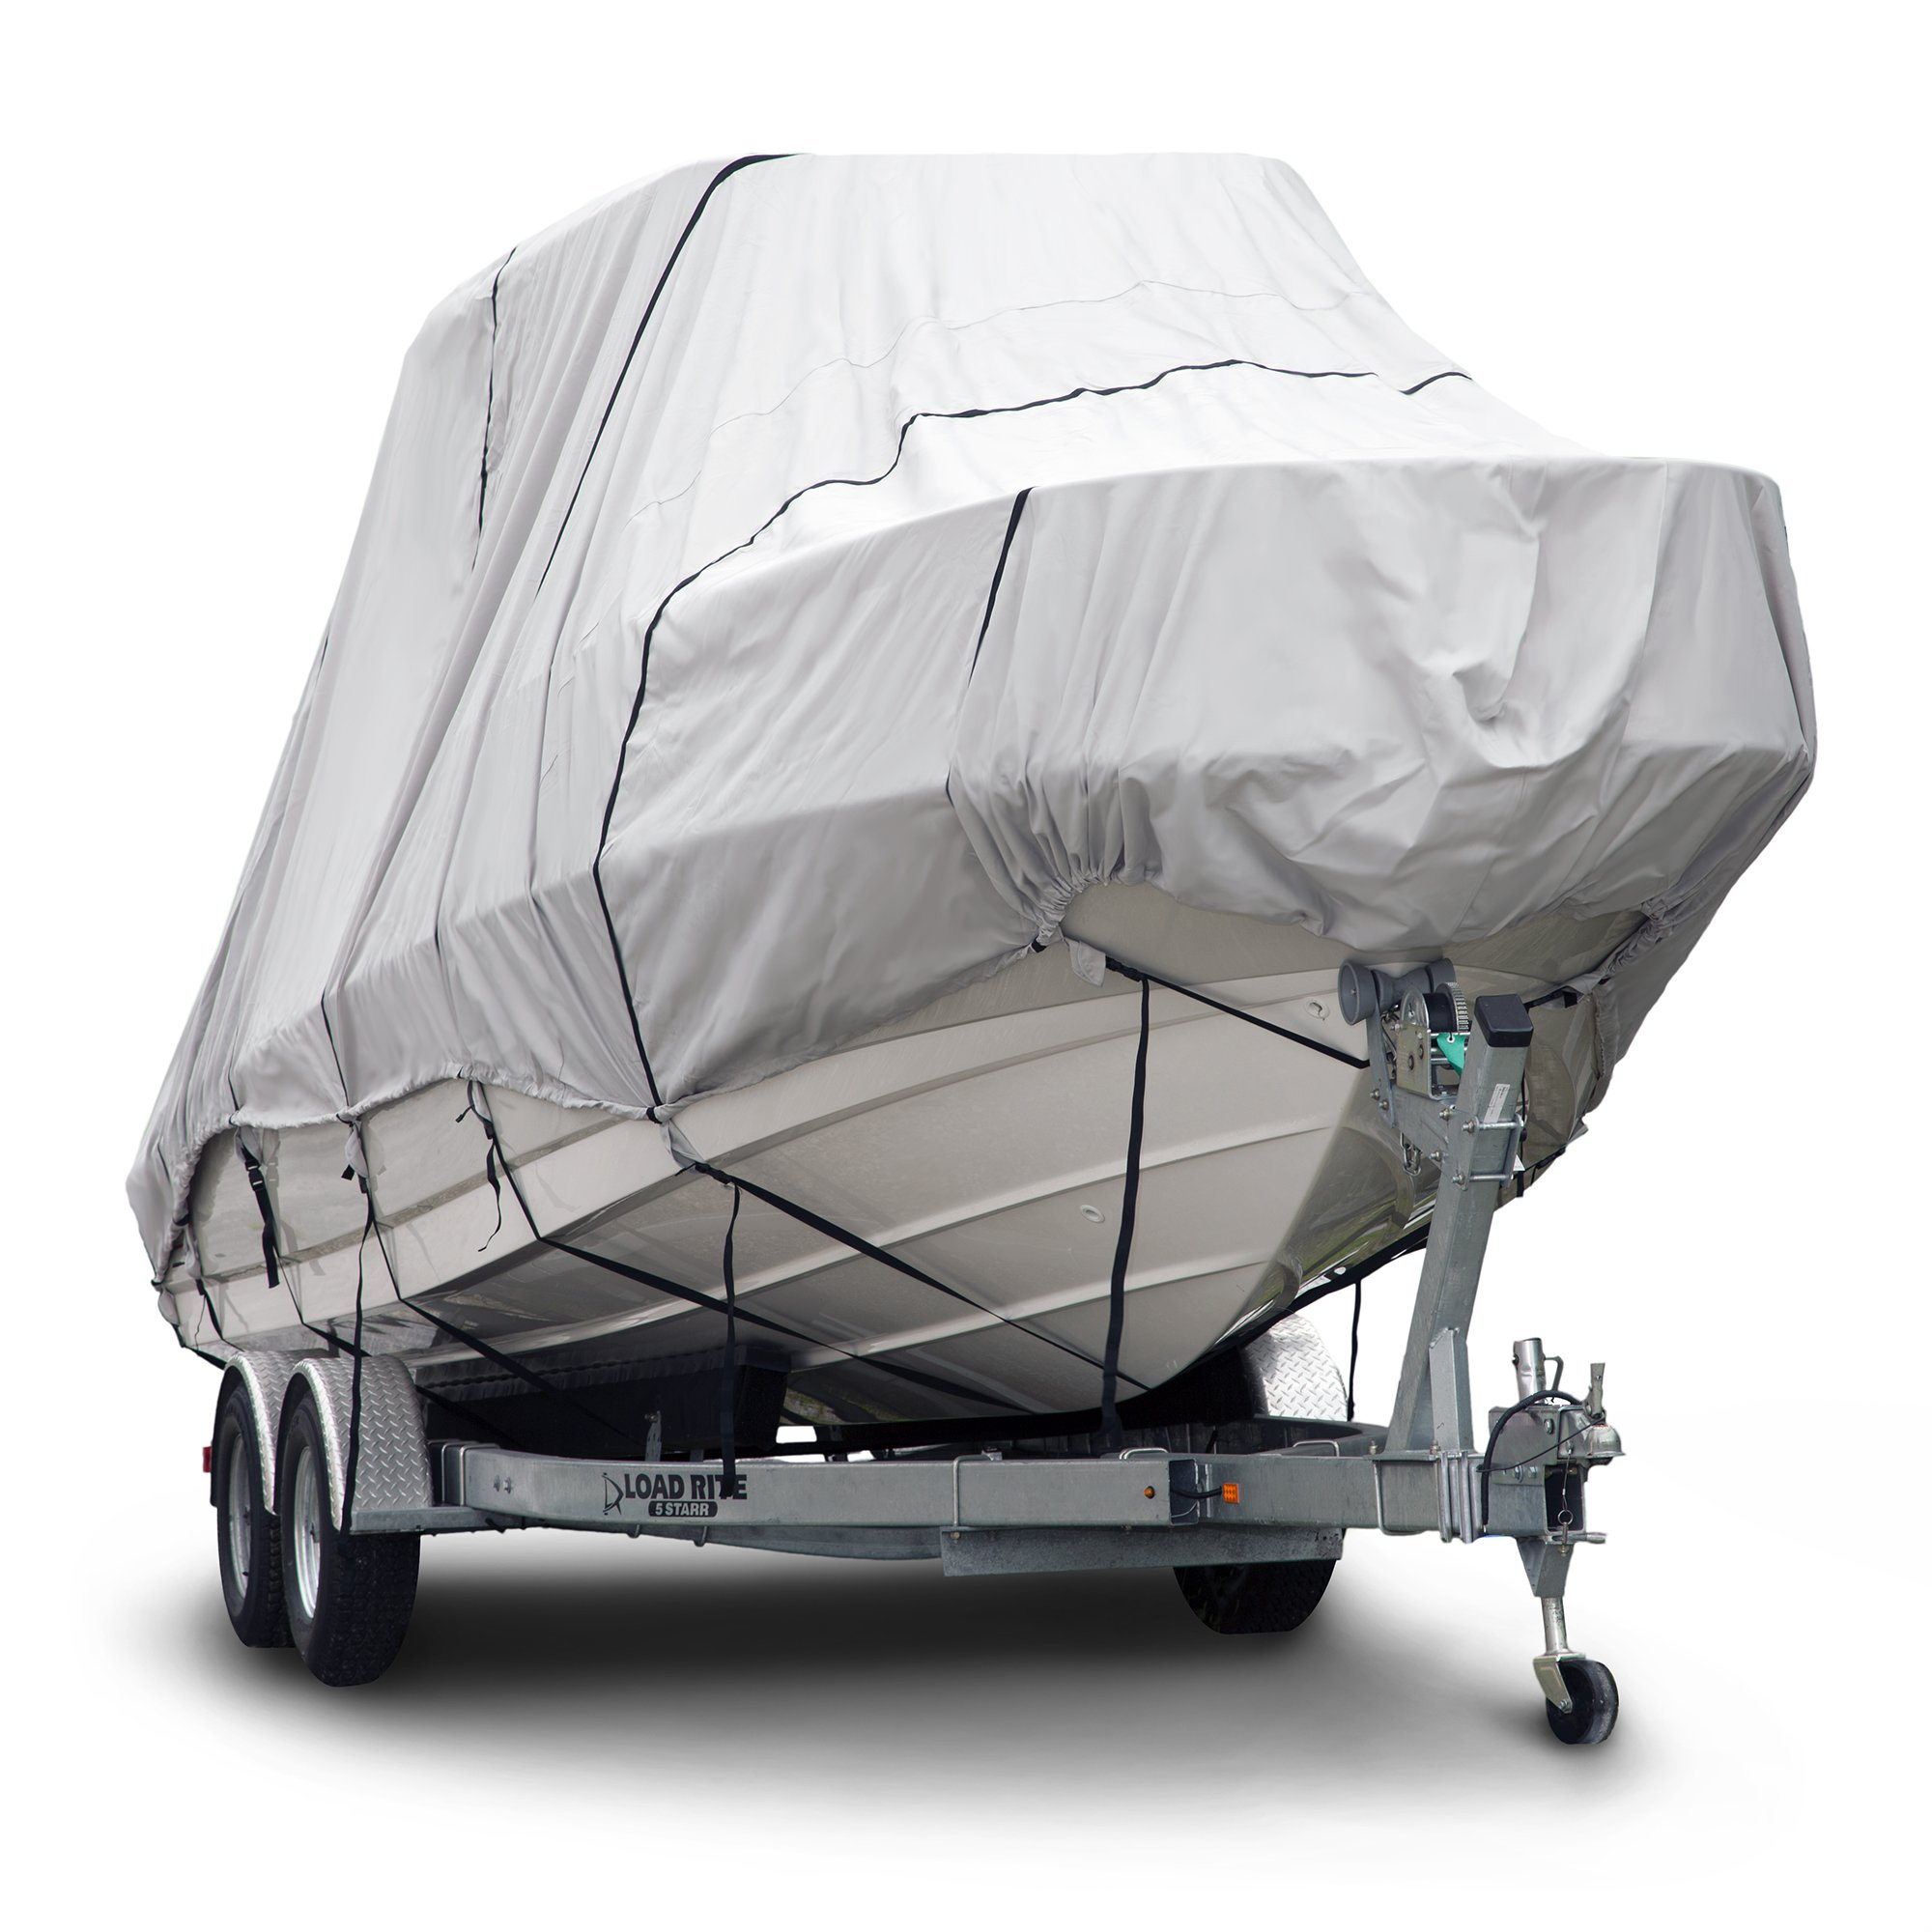 Budge 600 Denier Boat Cover fits Hard Top/T-Top Boats B-621-X8 (24' to 26' Long, Gray) by Budge